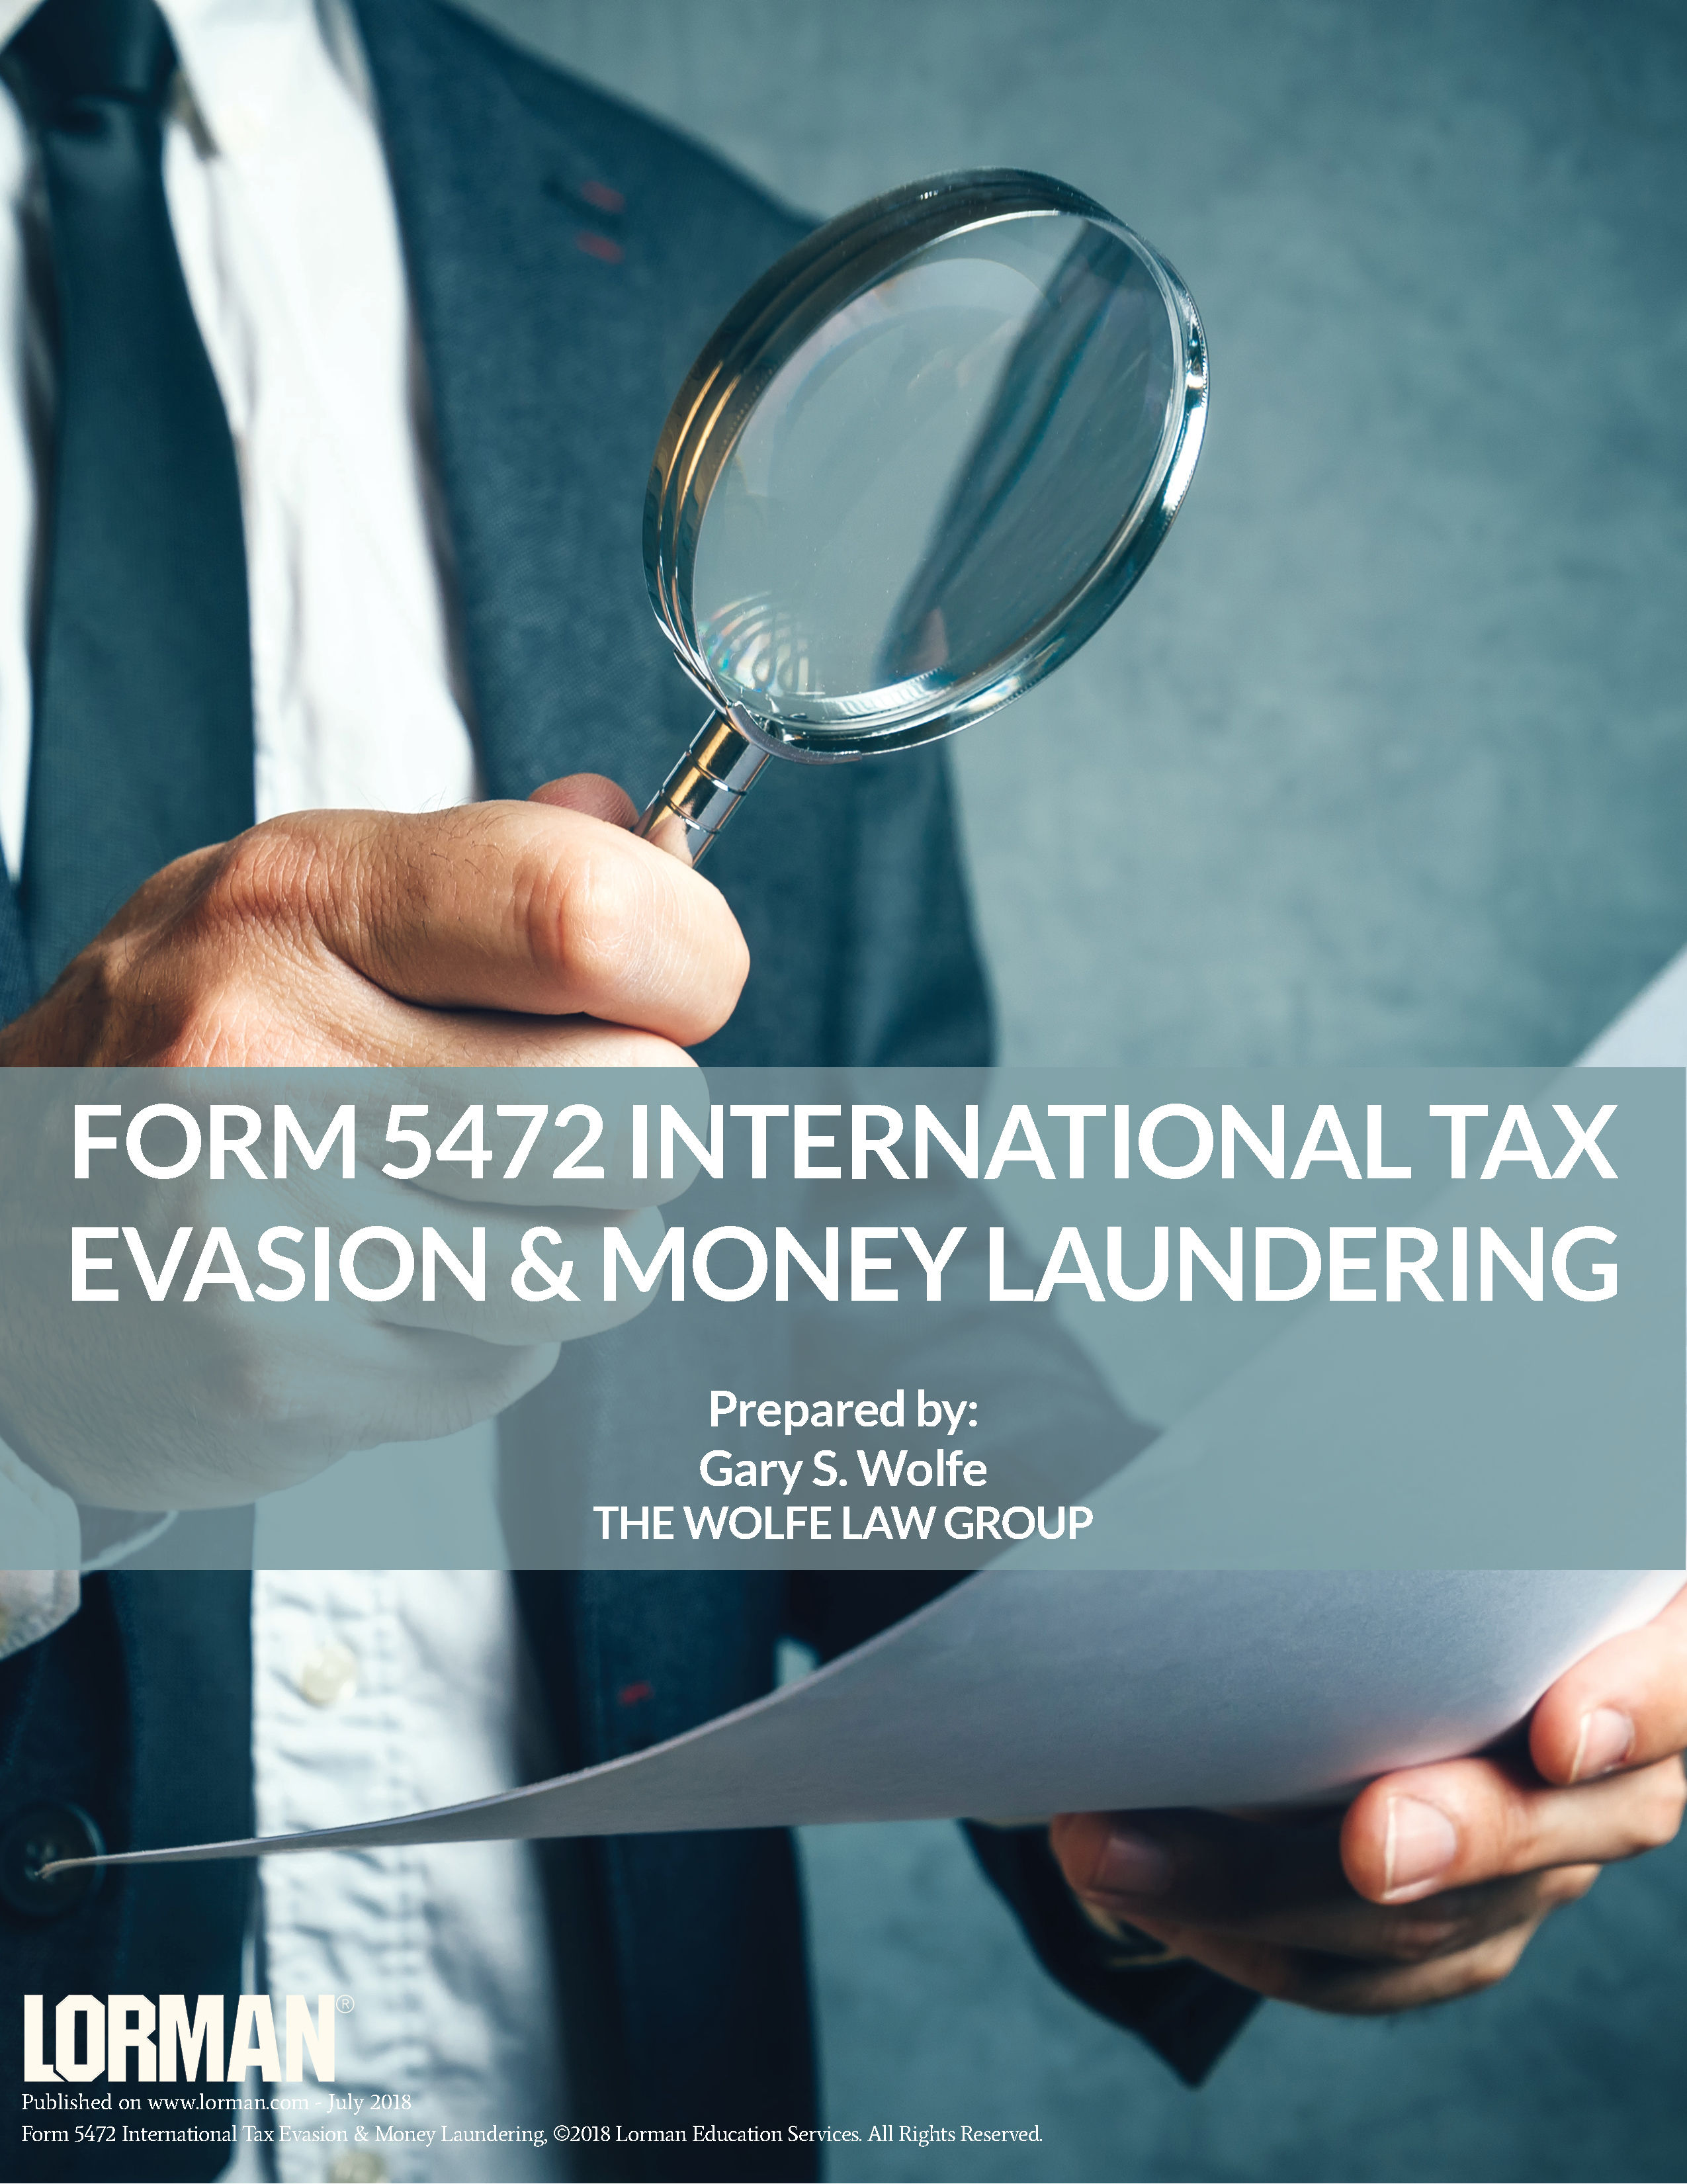 Form 5472 International Tax Evasion & Money Laundering